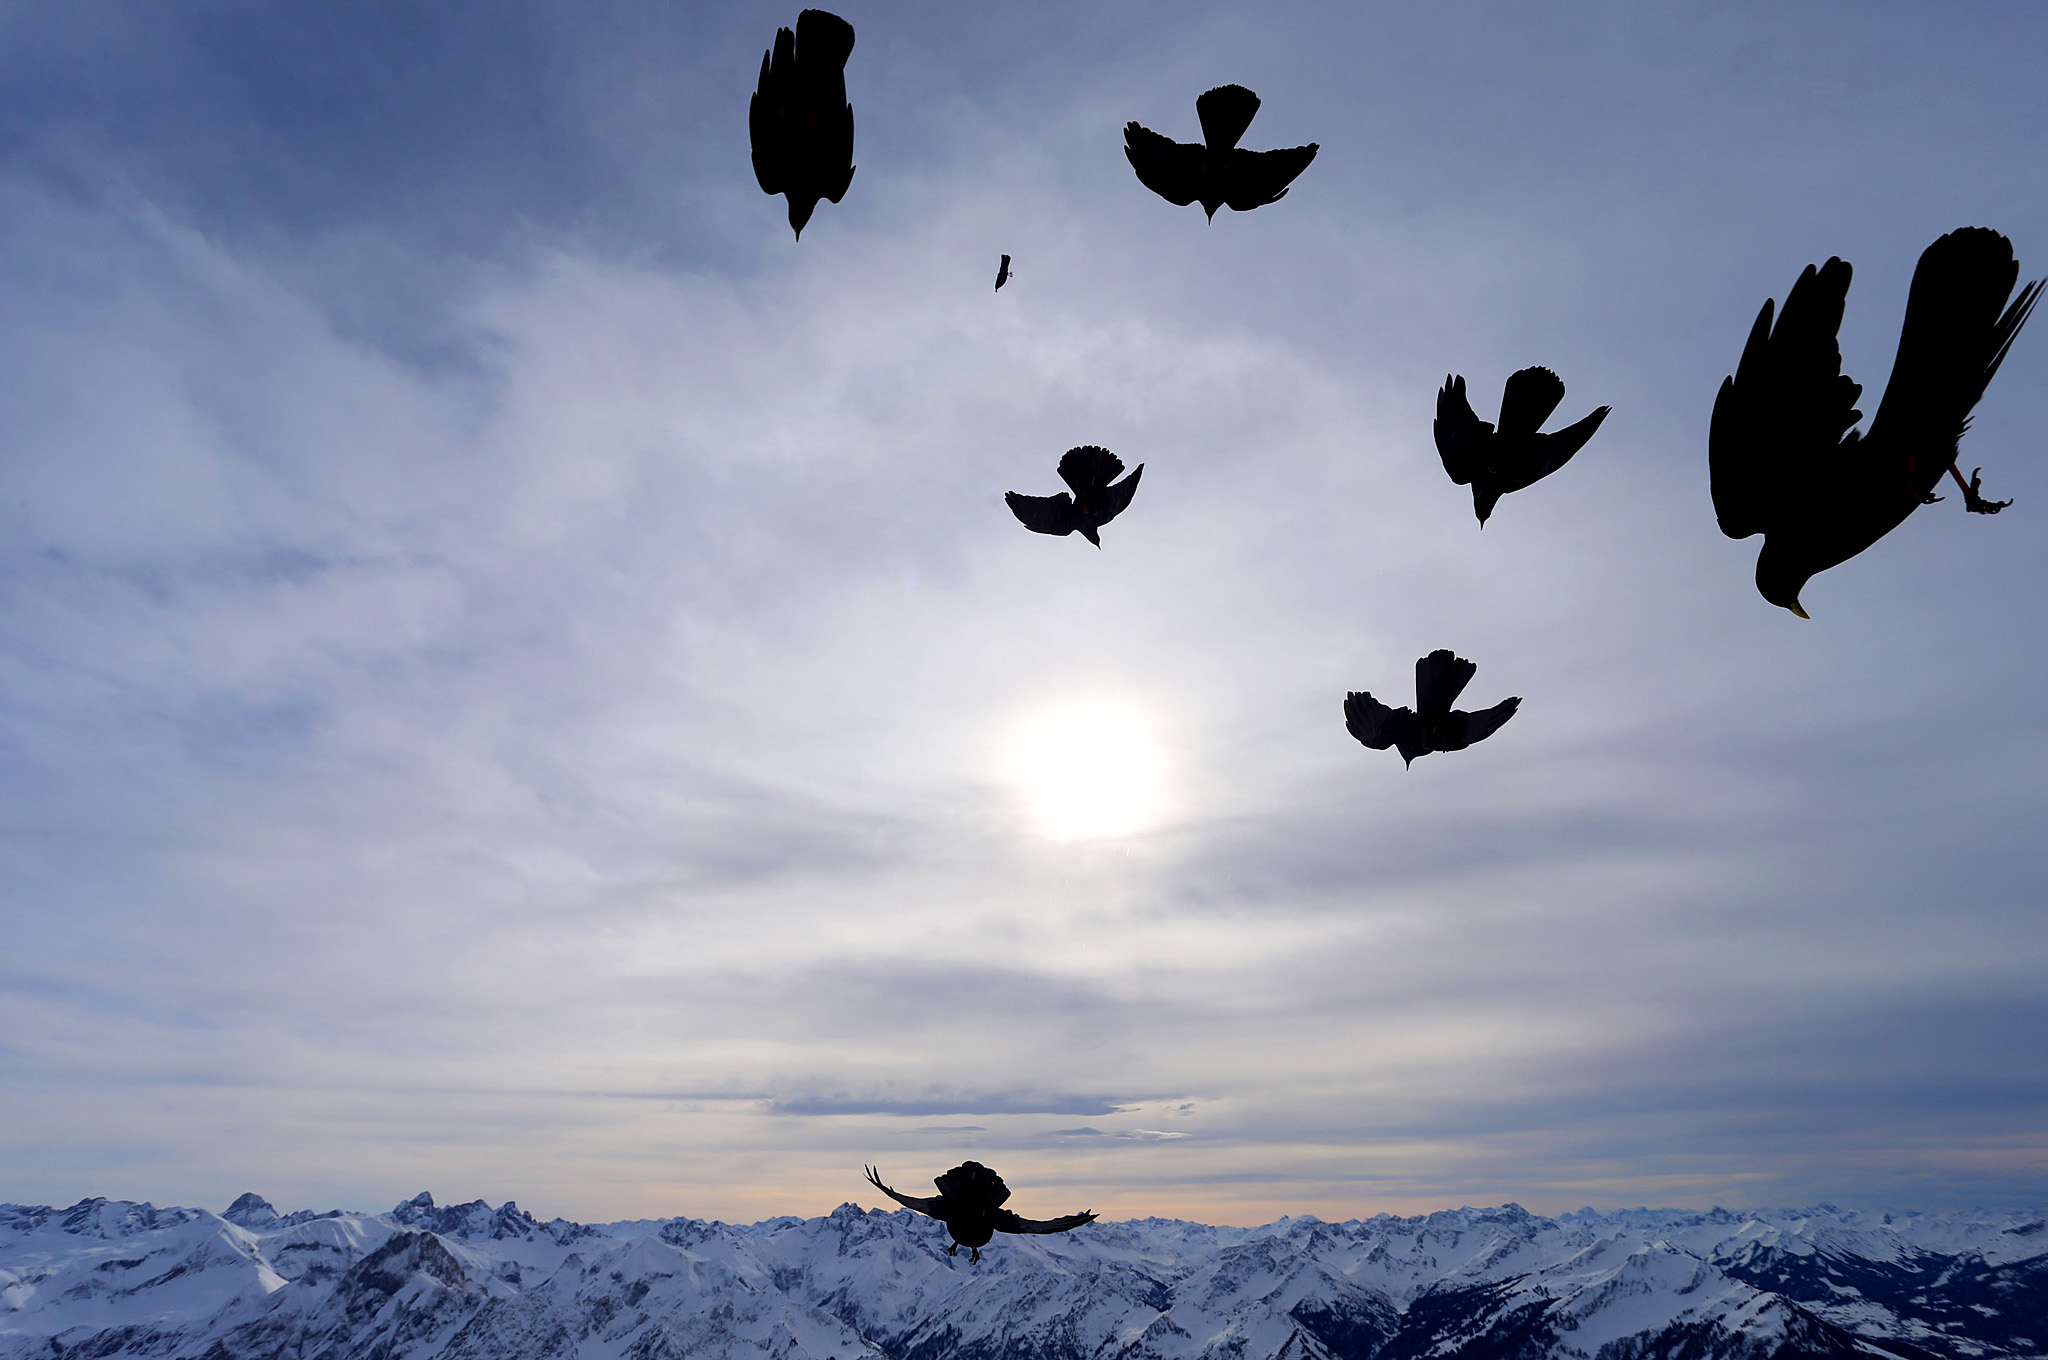 Alpine choughs start from the summit of ...Alpine choughs start from the summit of the 2,224 meters high Nebelhorn mountain near Oberstdorf, southern Germany, towards a snow-covered Alpine panorama, on February 9, 2016. / AFP / dpa / Karl-Josef Hildenbrand / Germany OUTKARL-JOSEF HILDENBRAND/AFP/Getty Images